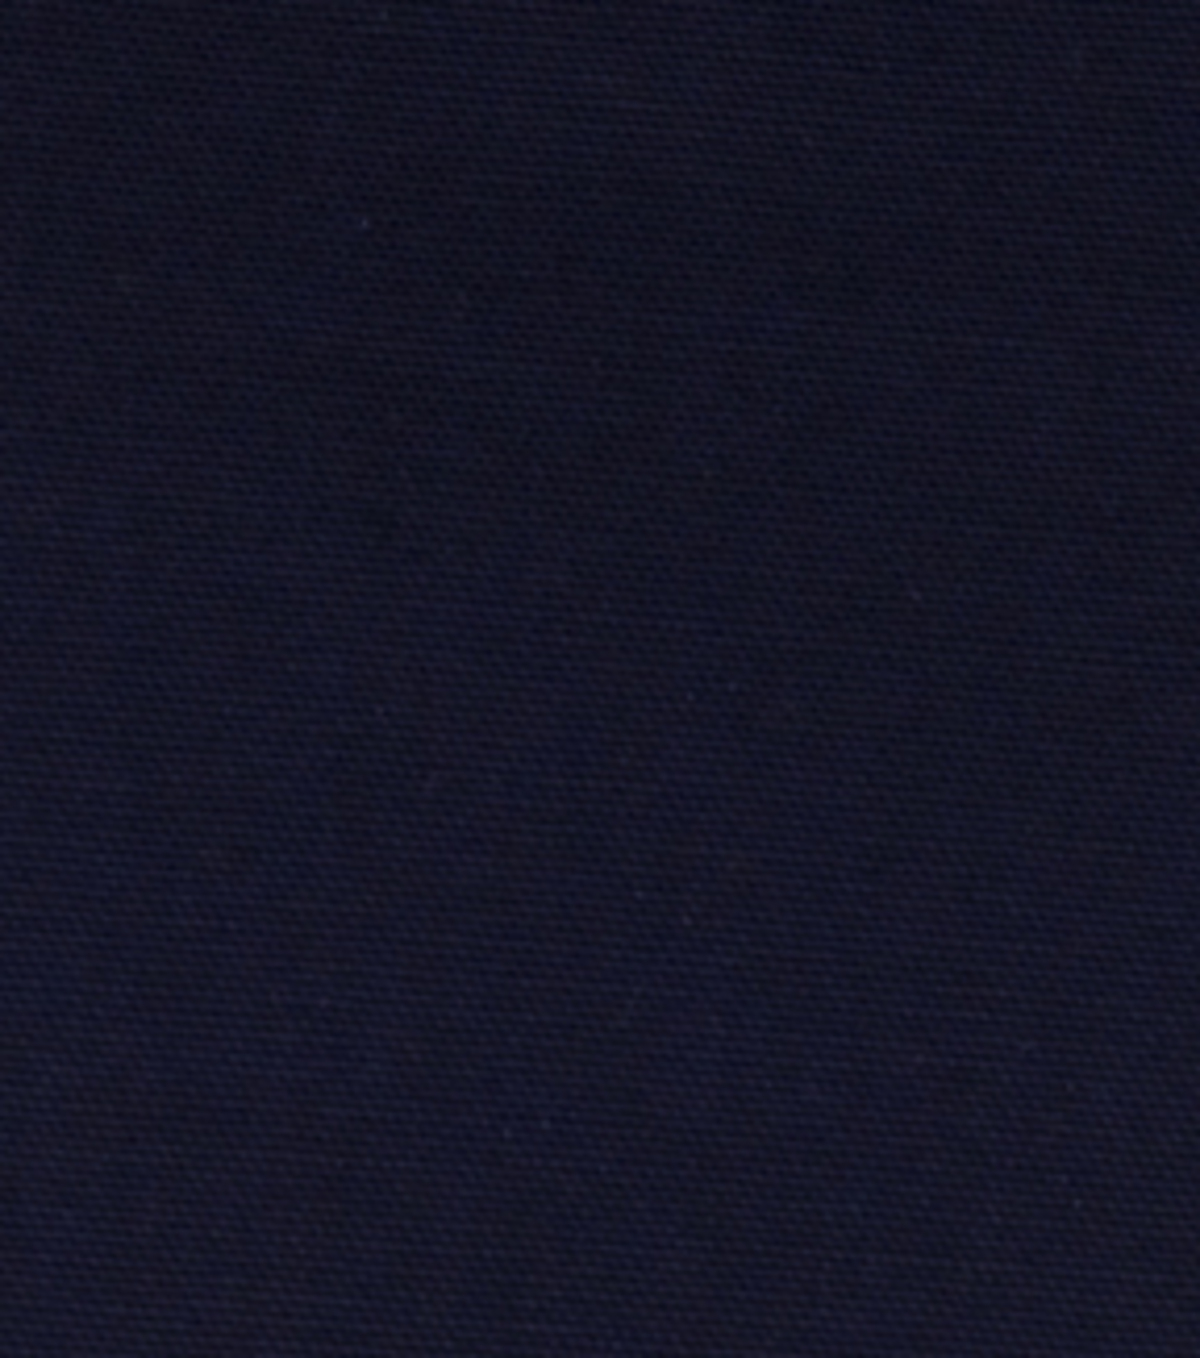 Home Decor 8\u0022x8\u0022 Fabric Swatch-Signature Series Legacy Cotton Navy